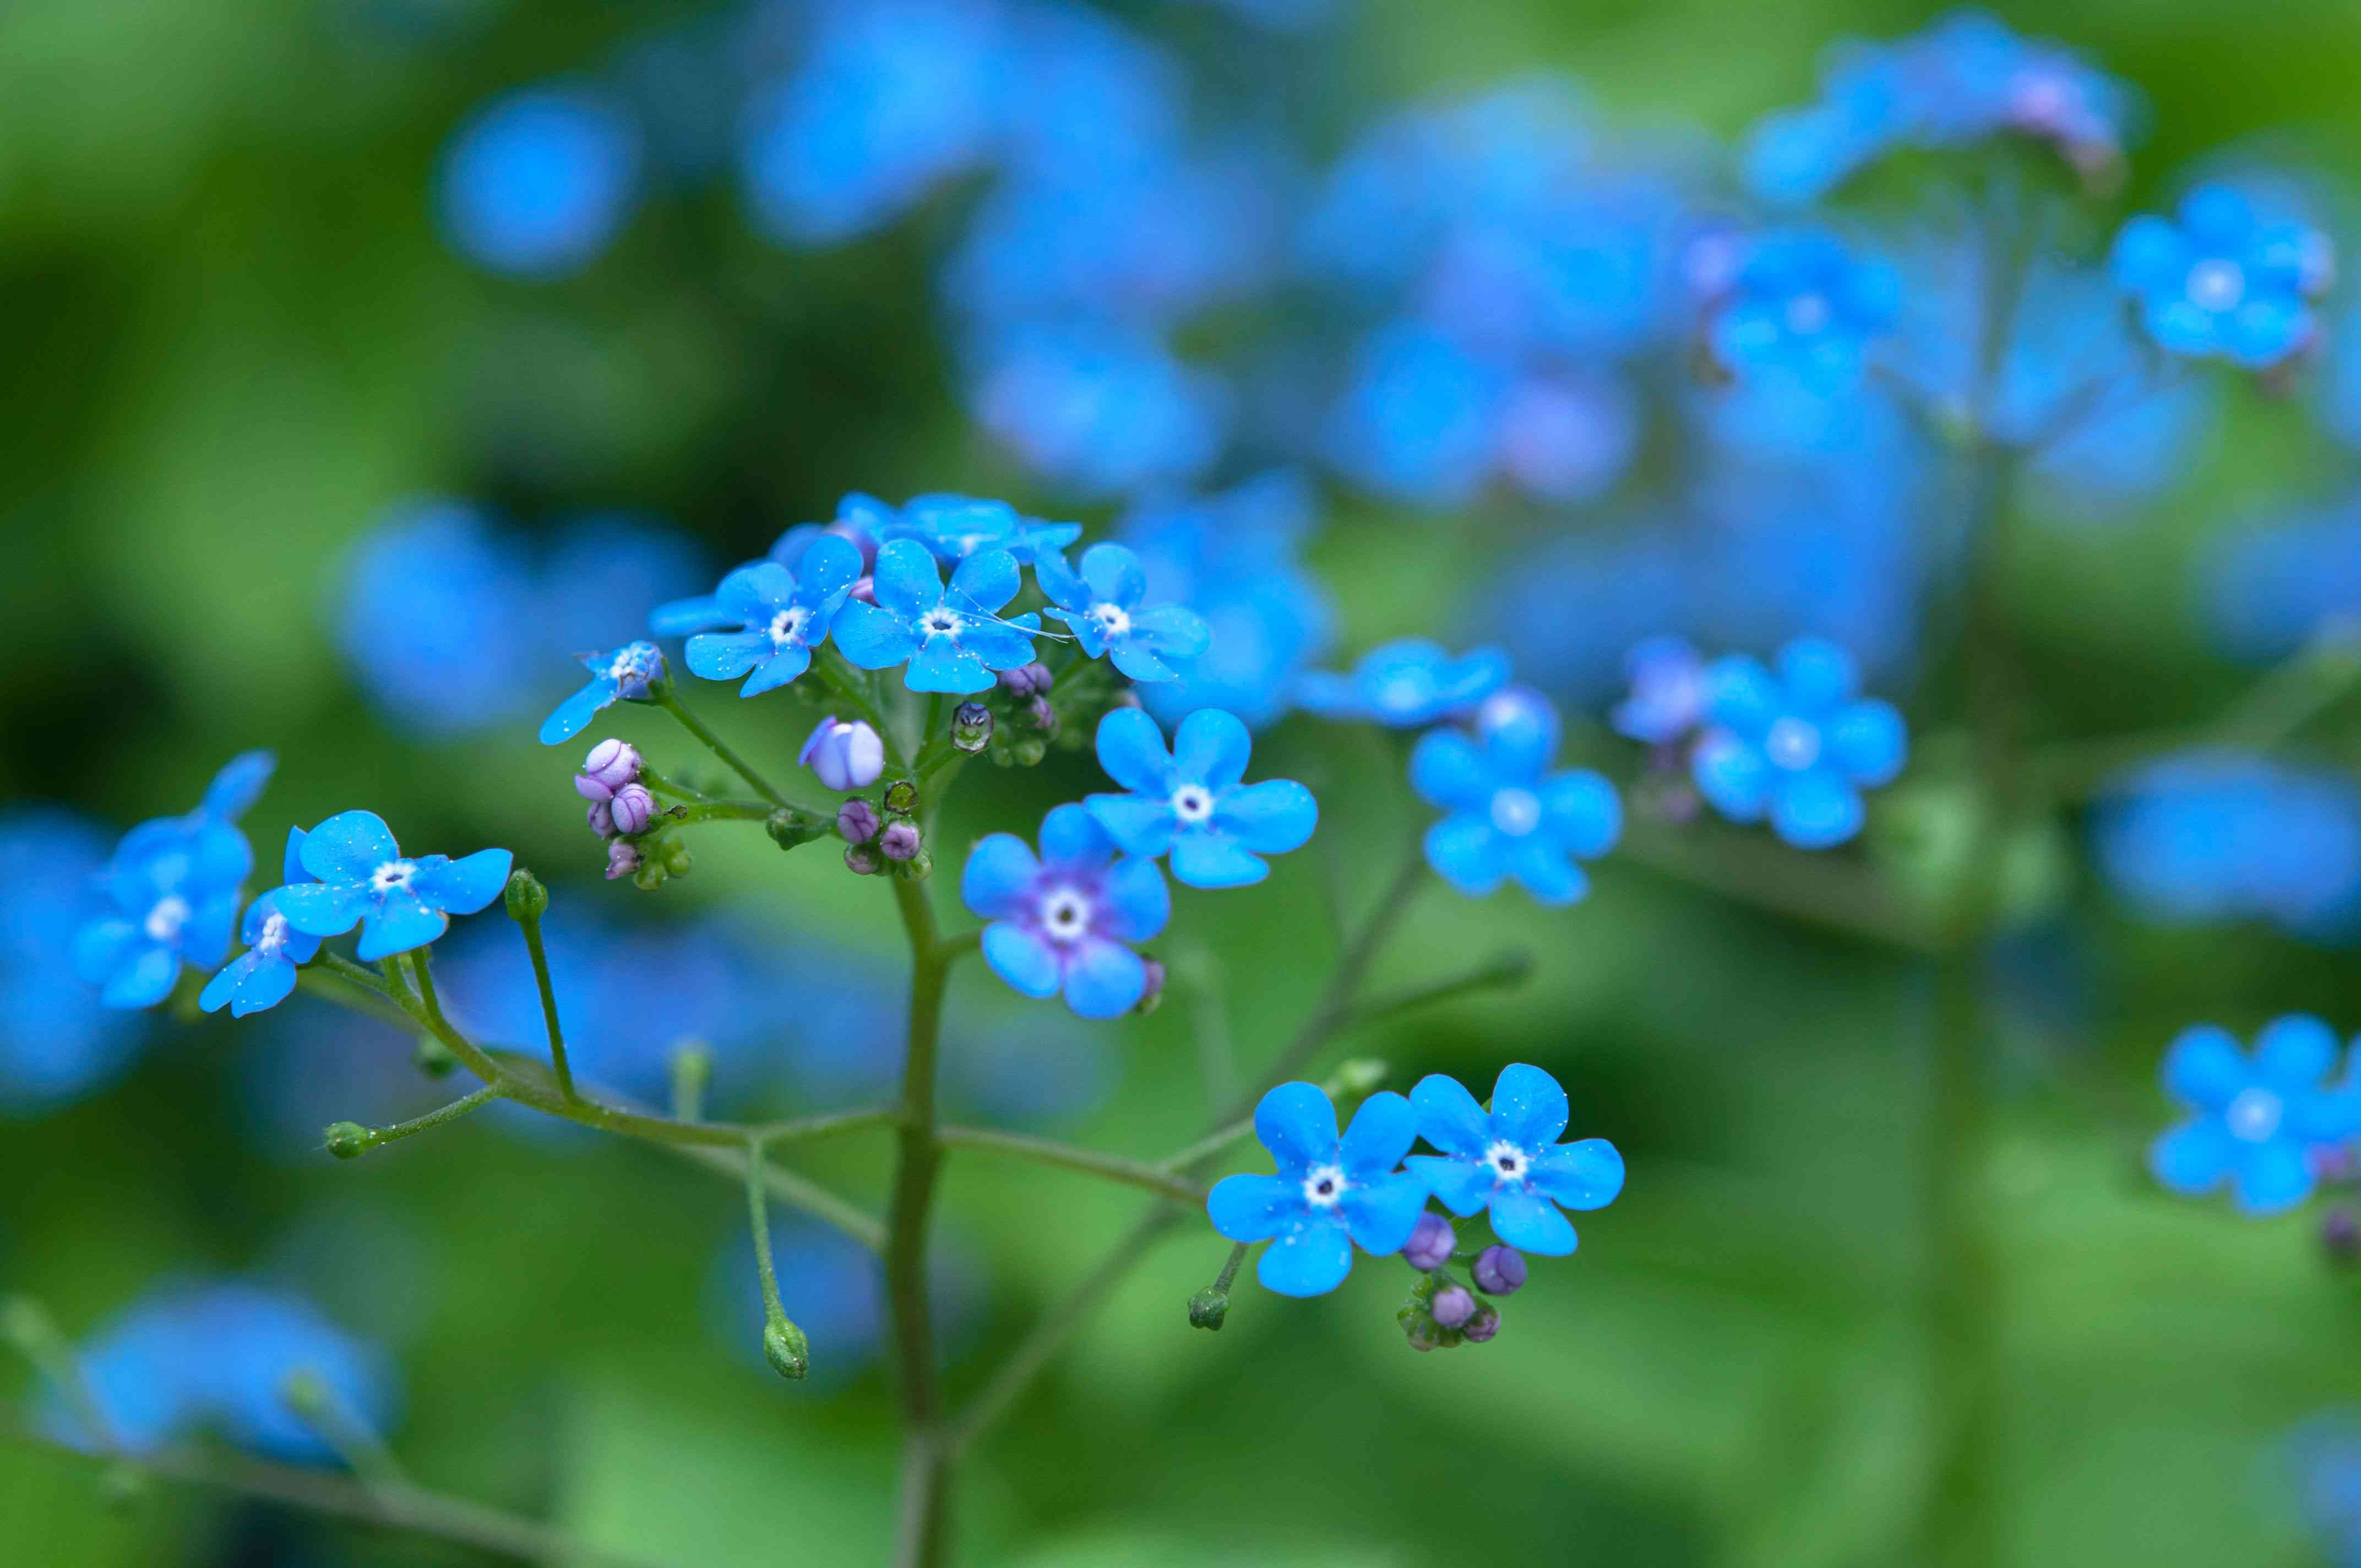 Siberian bugloss plant with small clump-forming blue flowers closeup